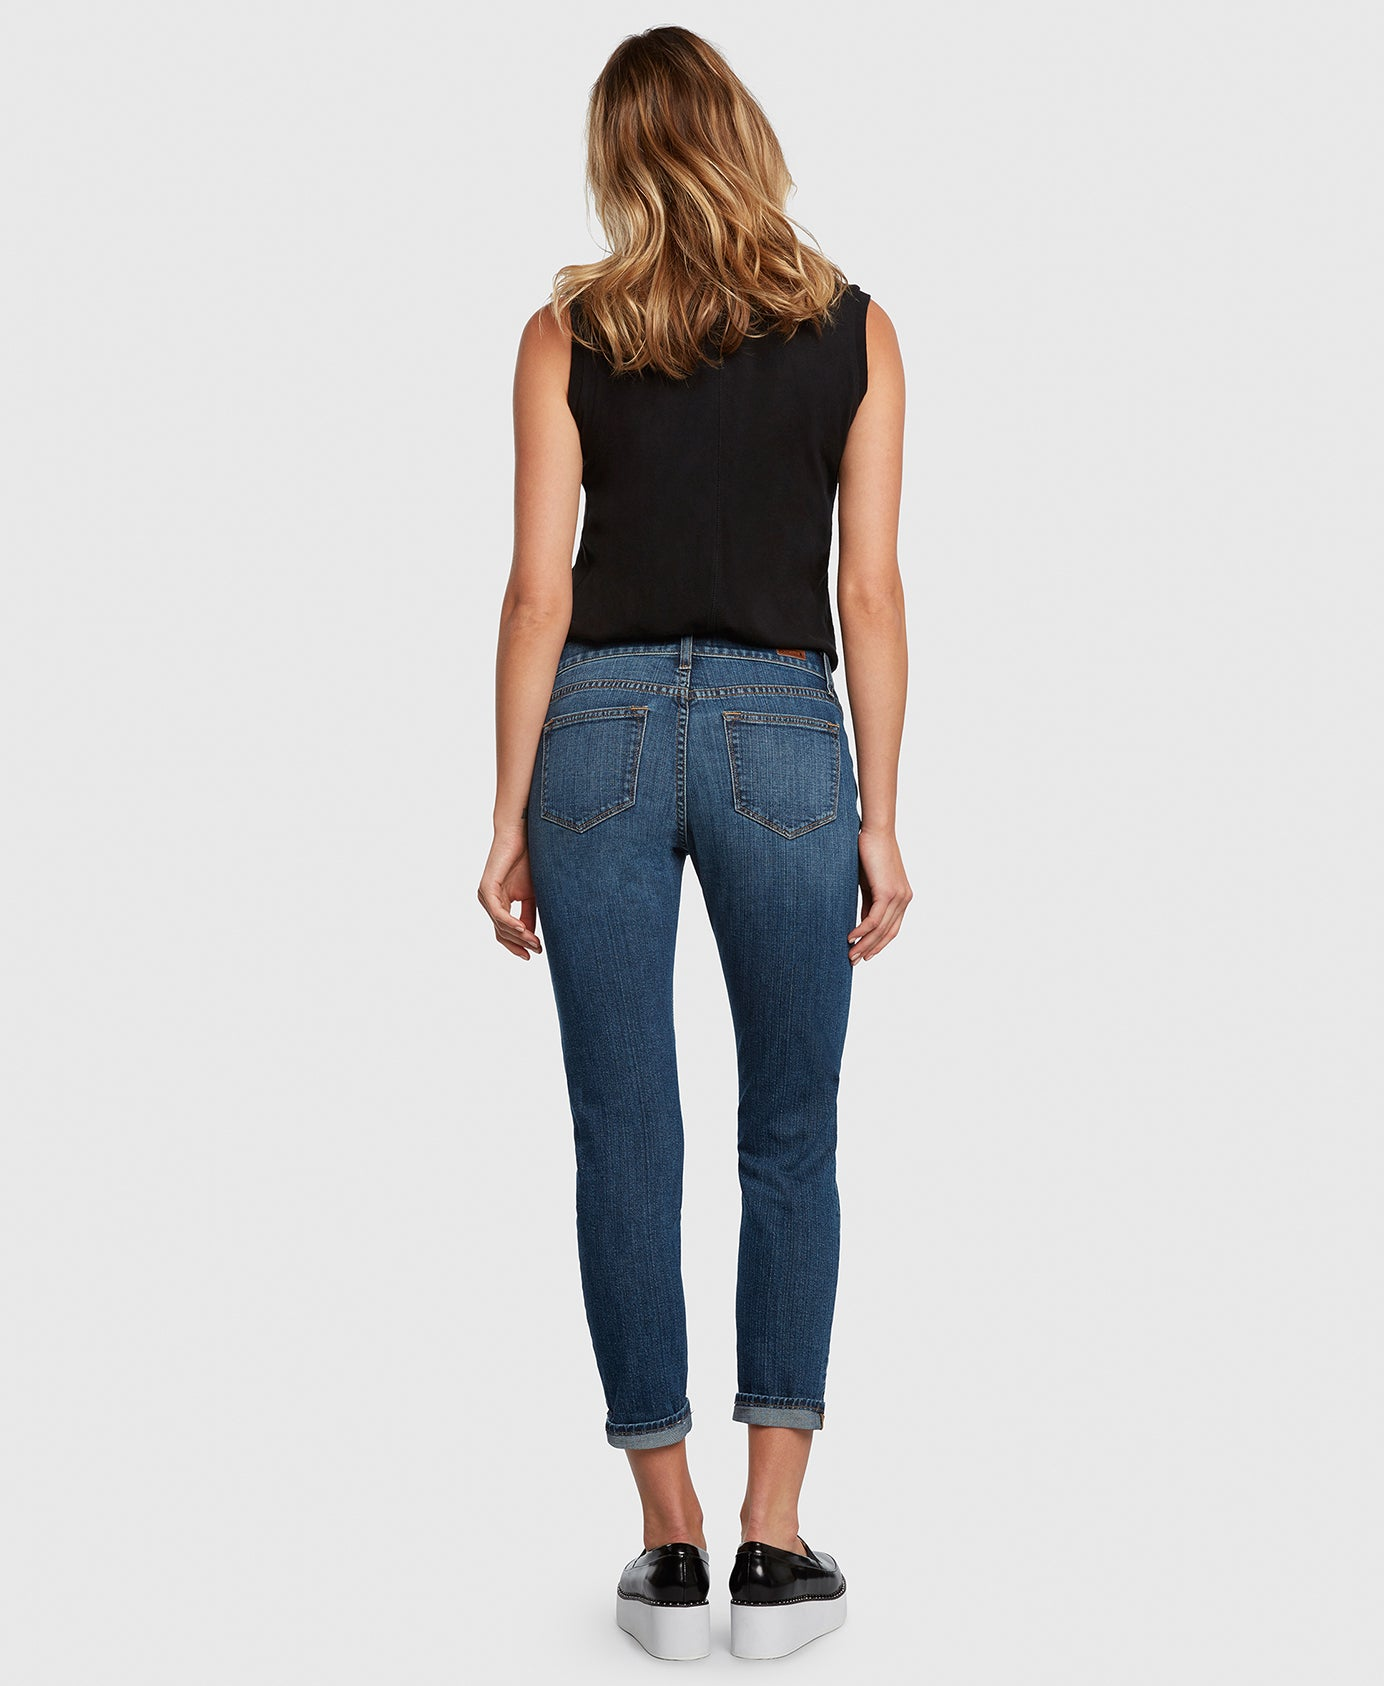 Principle FAVORITE in Movin' On boyfriend jeans back